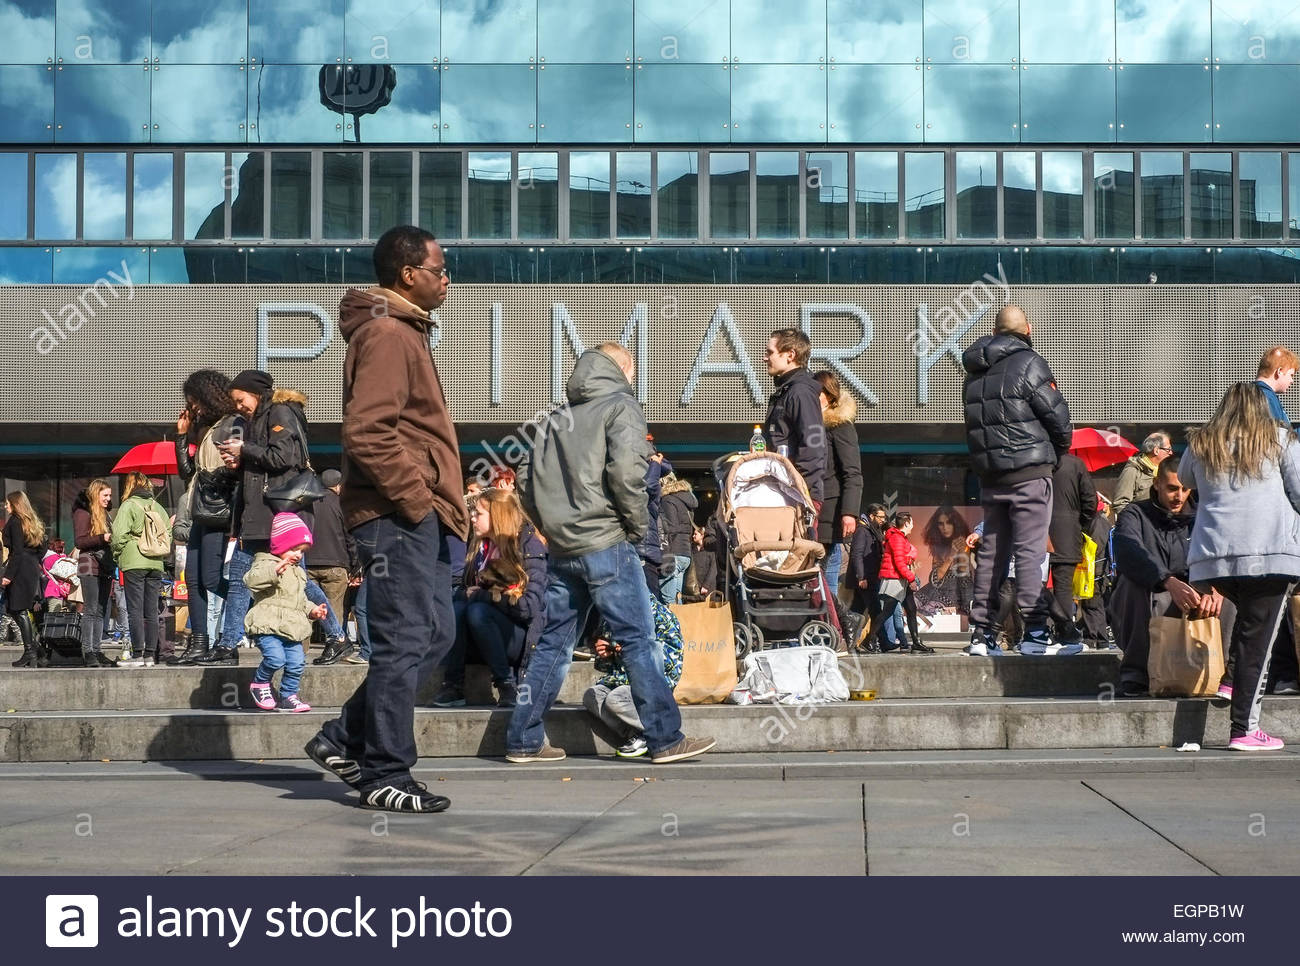 Primark store  shoppers and customers near Alexanderplatz - February 28, 2015 Berlin Germany - Stock Image